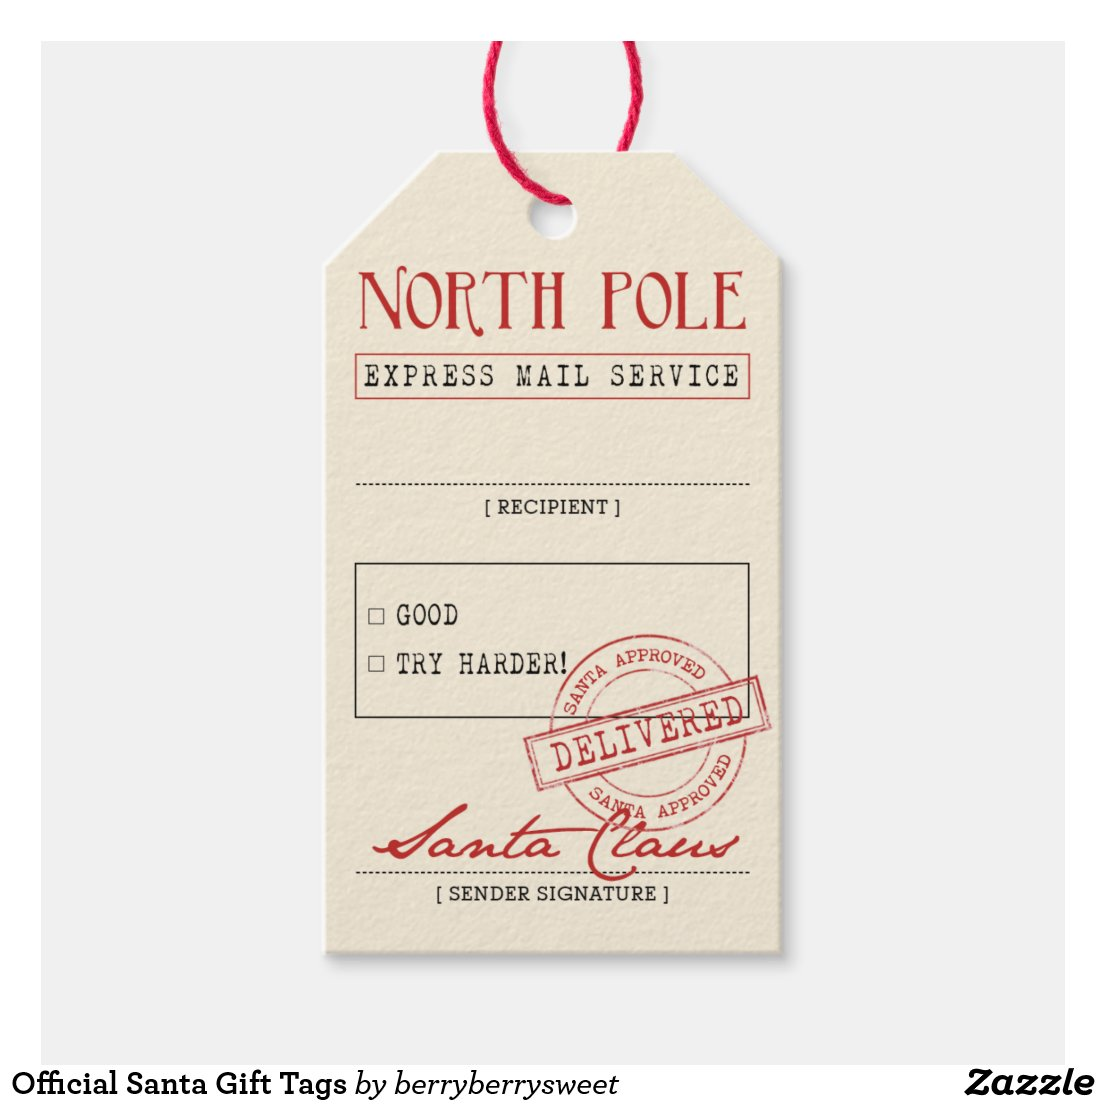 Official Santa Gift Tags